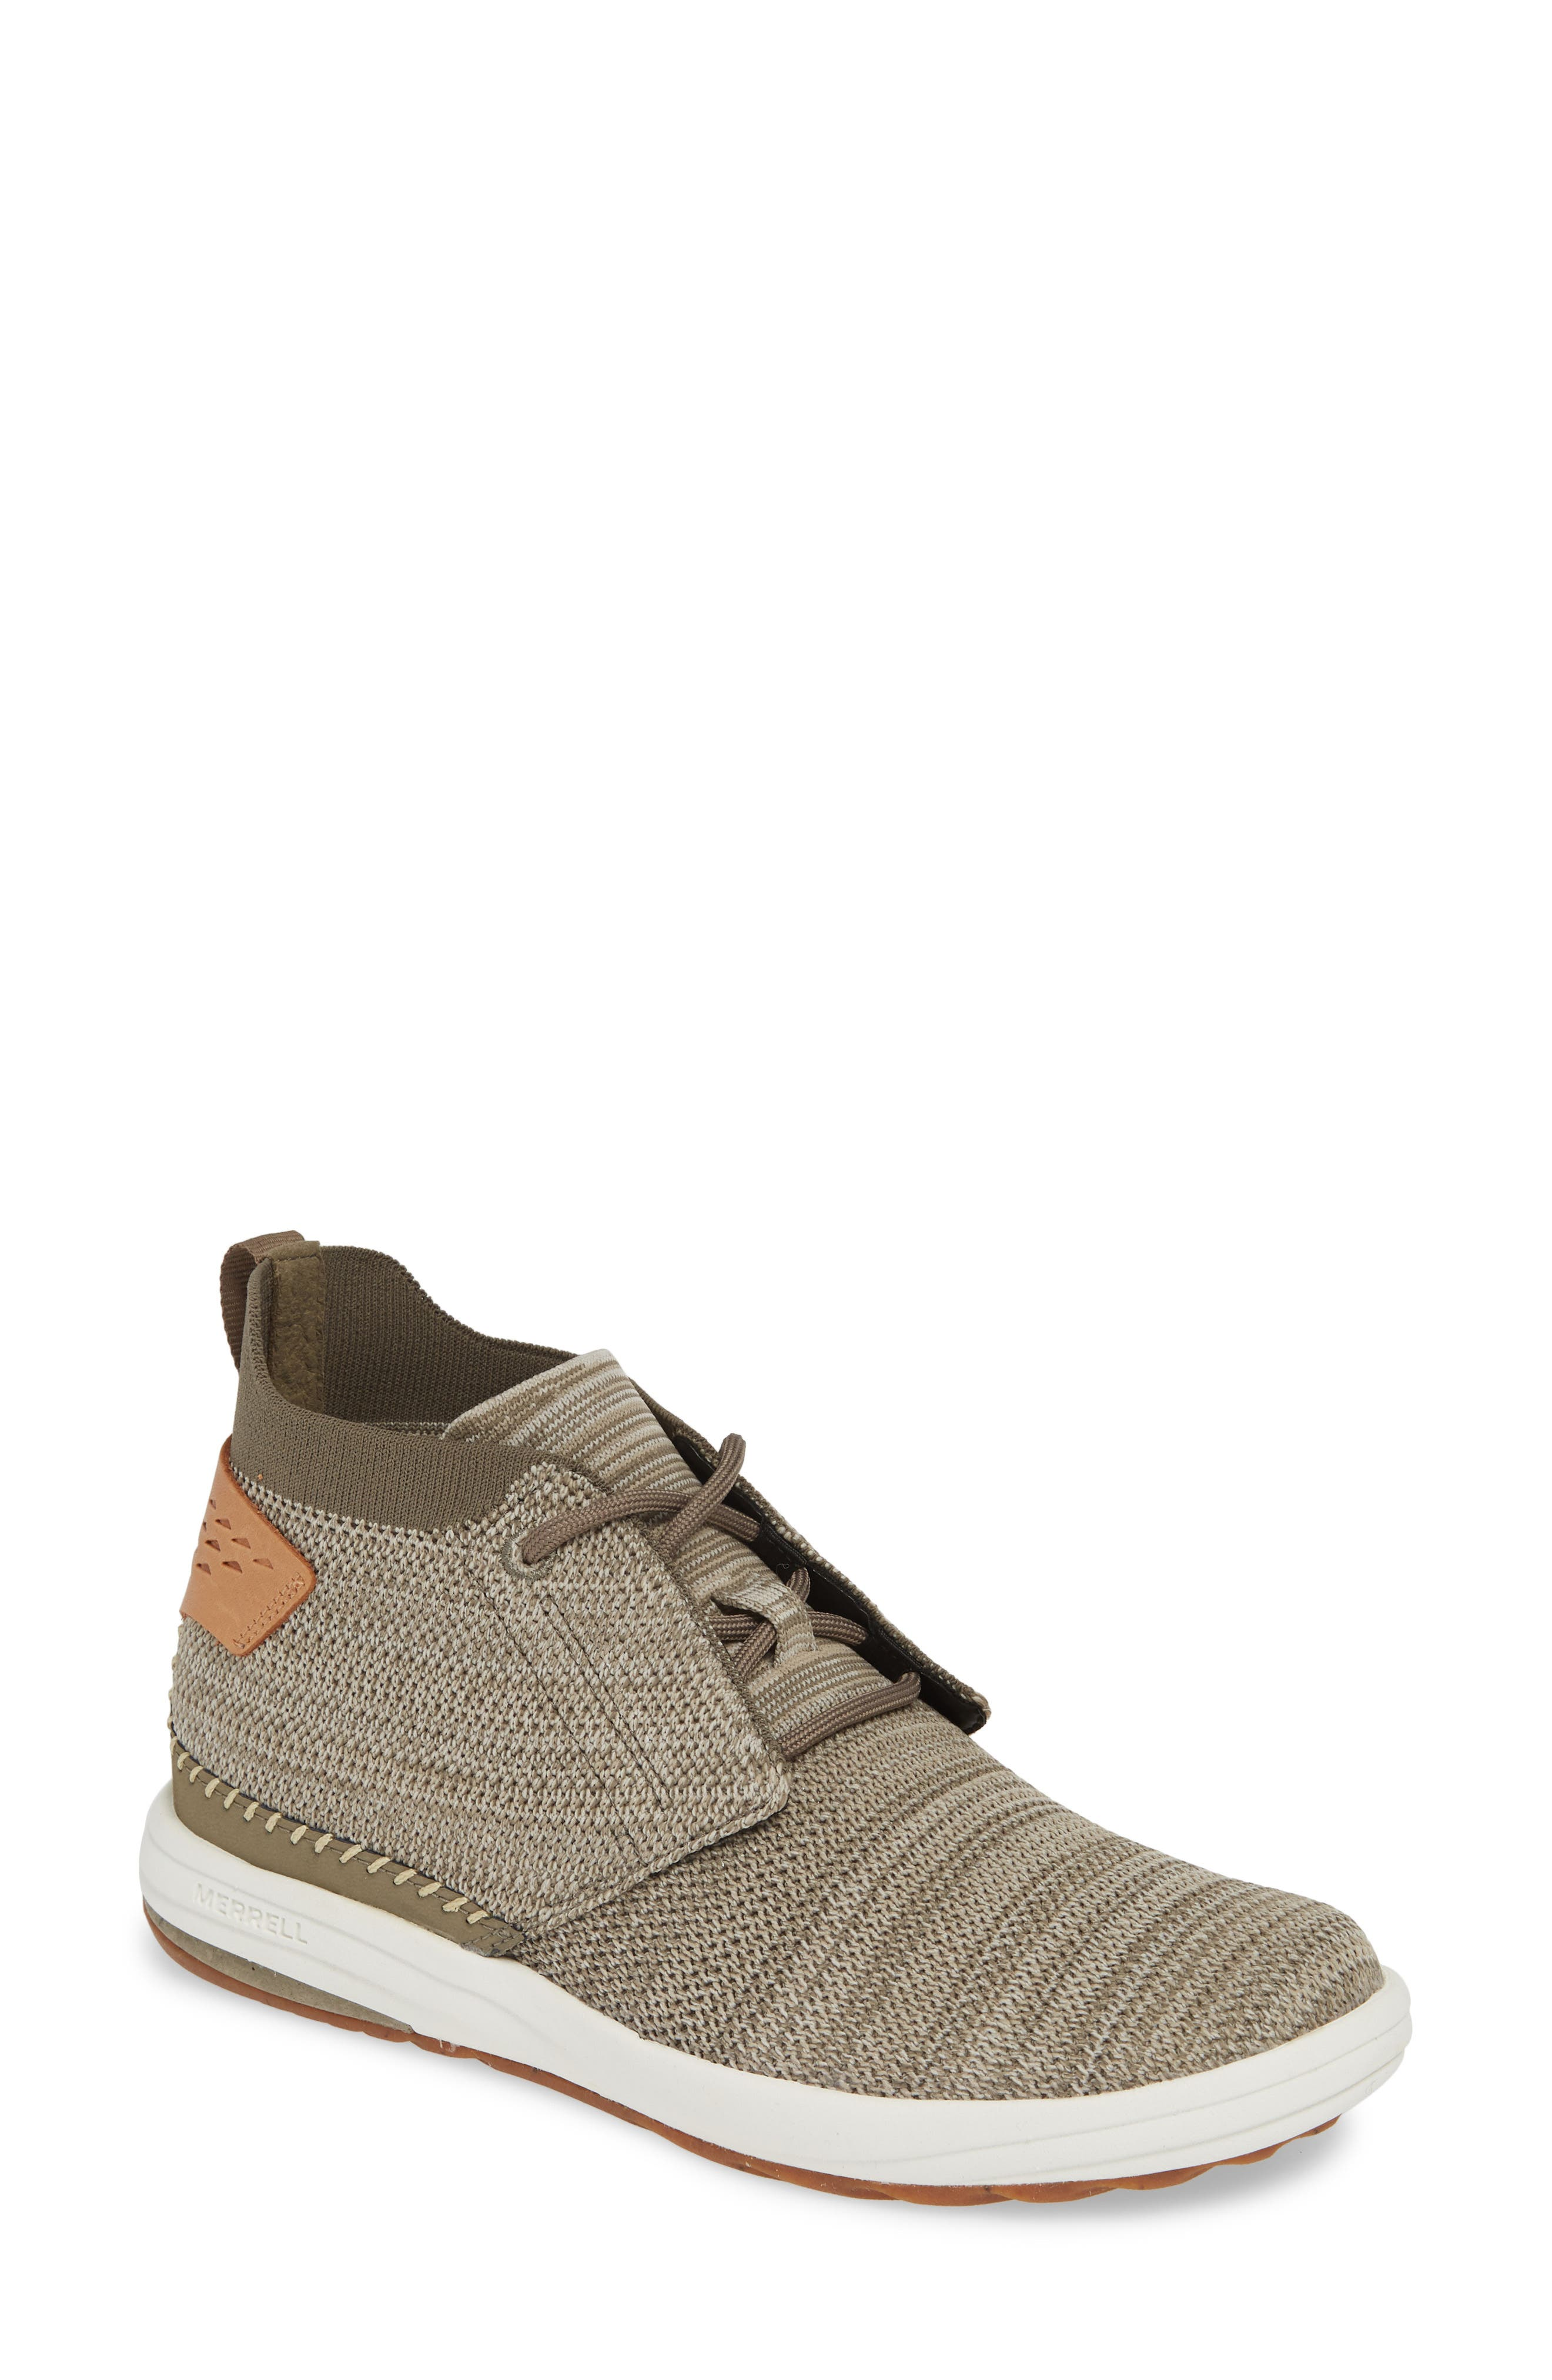 Image of Merrell Gridway Mid Sneaker